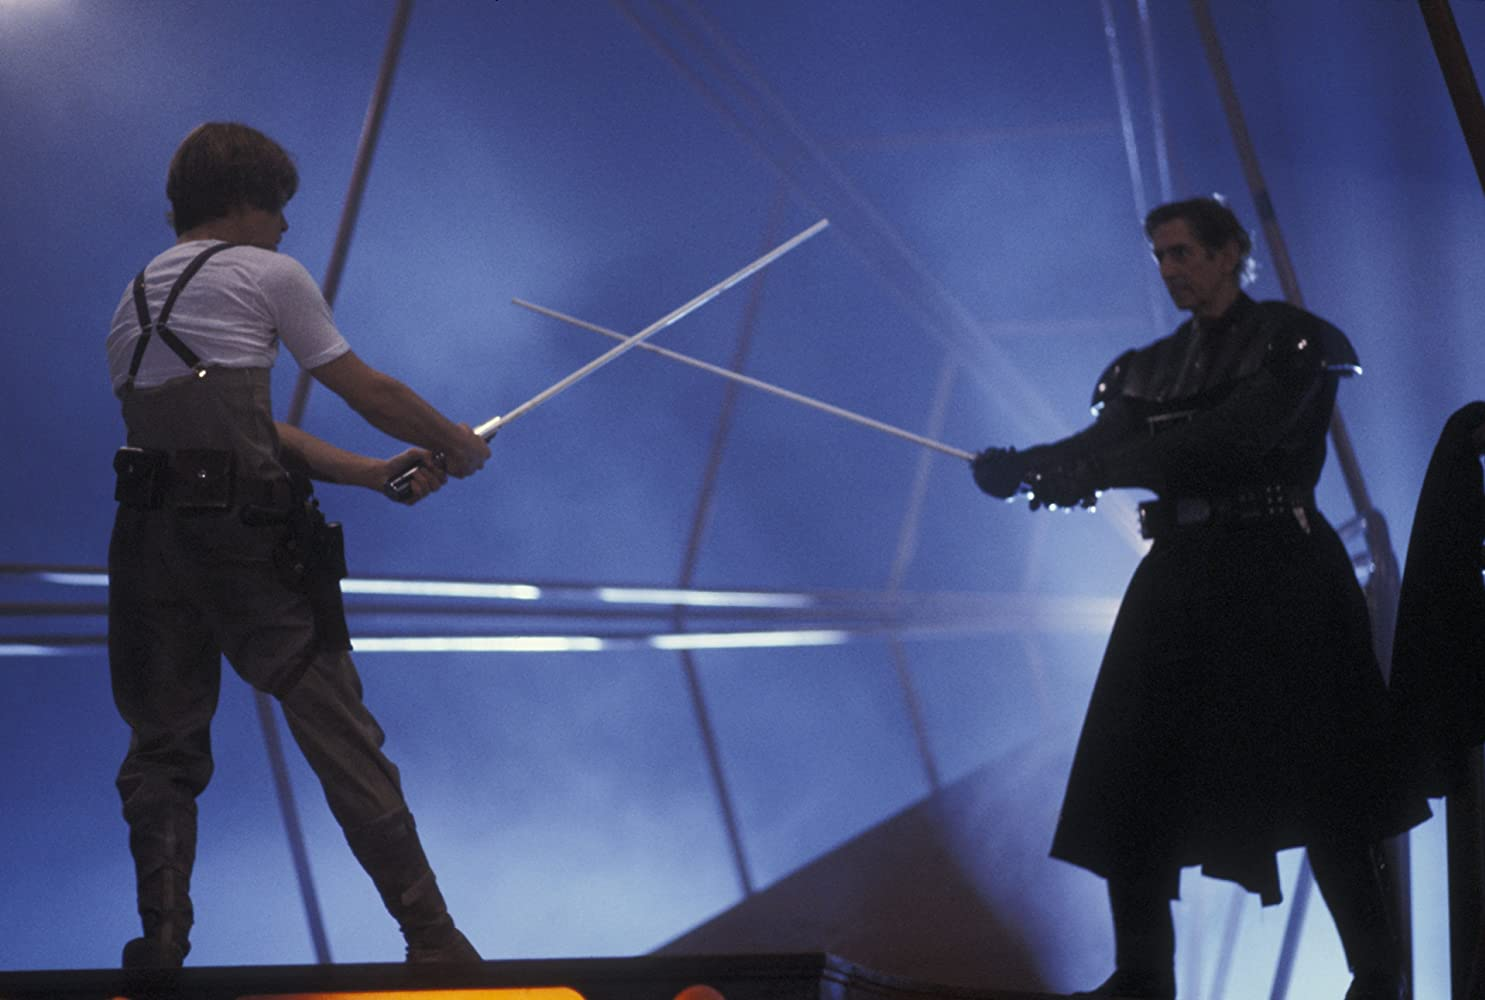 Mark Hamill and Bob Anderson in Star Wars Episode V - The Empire Strikes Back 1980